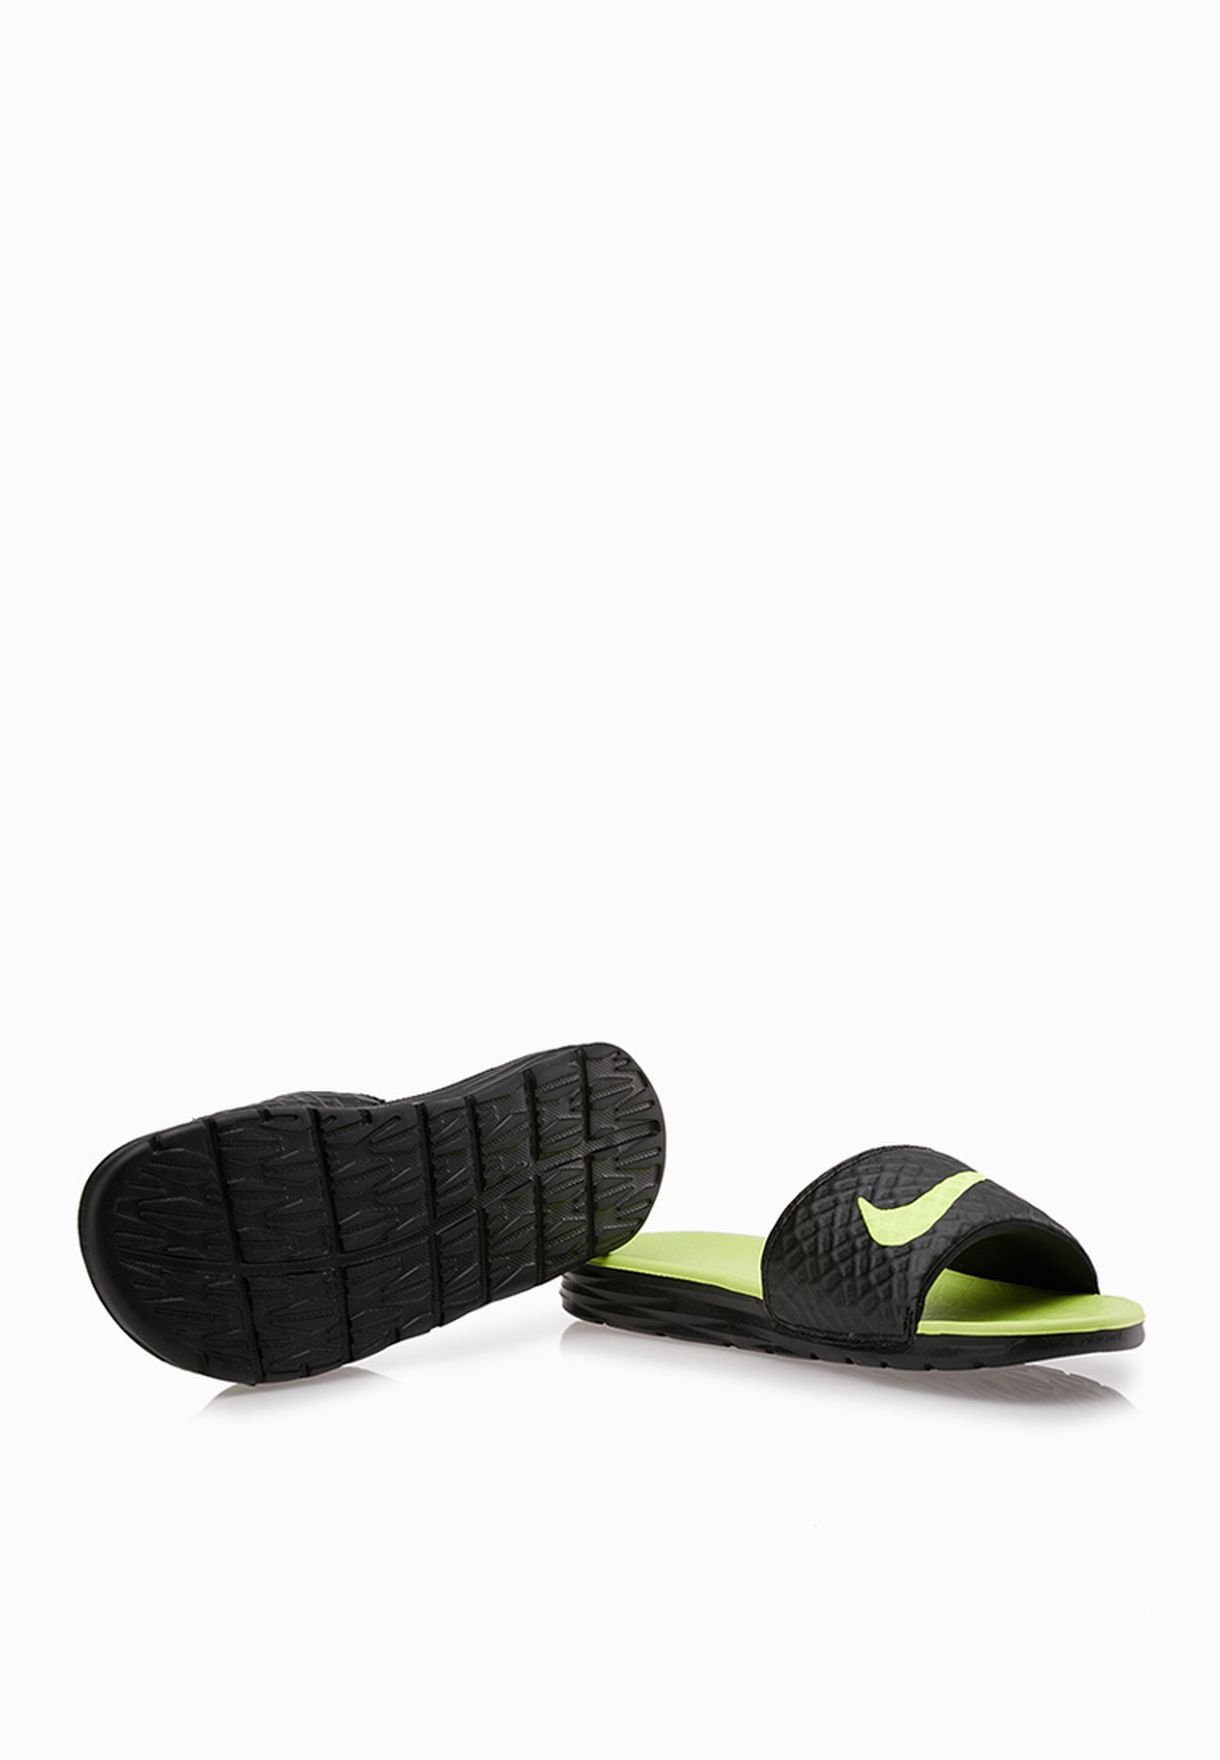 25f20b85c Shop Nike black Benassi Solarsoft Slide 2 705474-070 for Men in ...